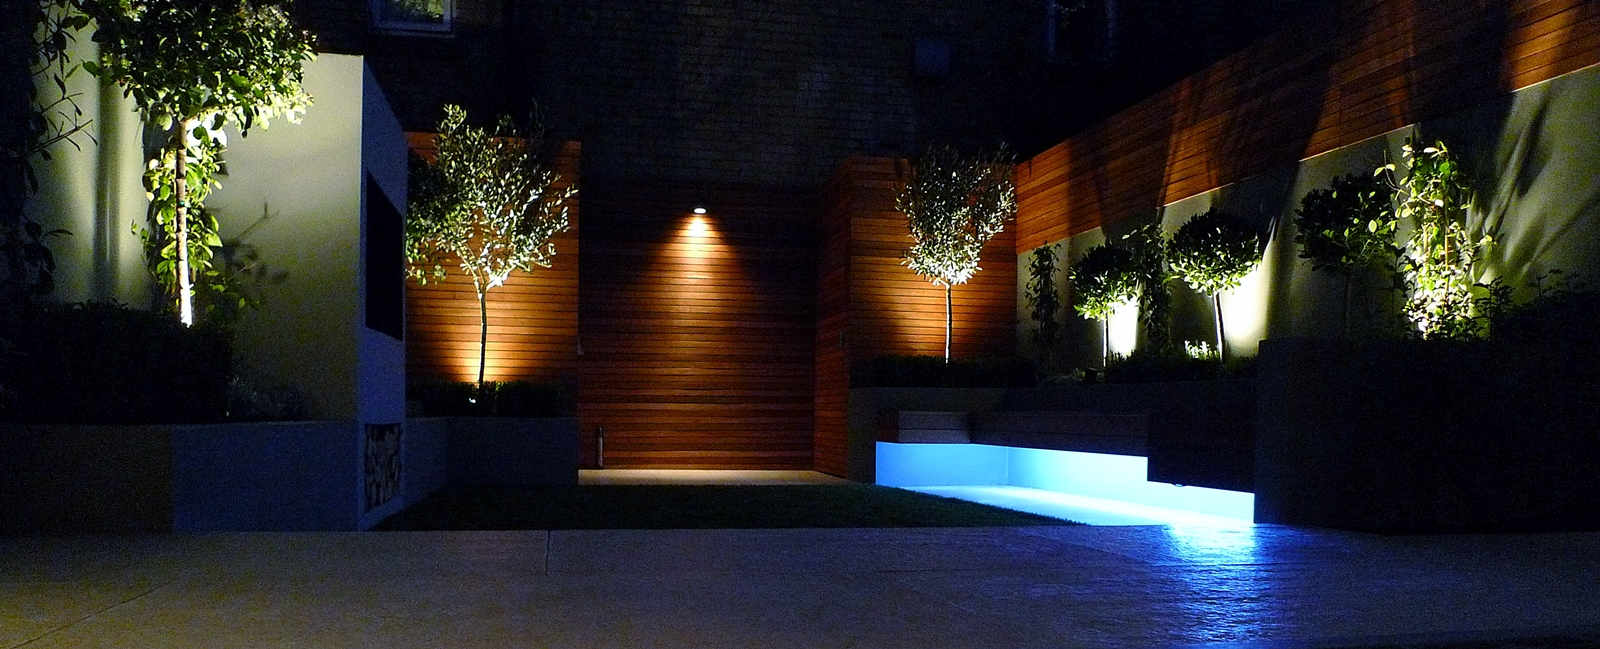 Night London Garden Blog